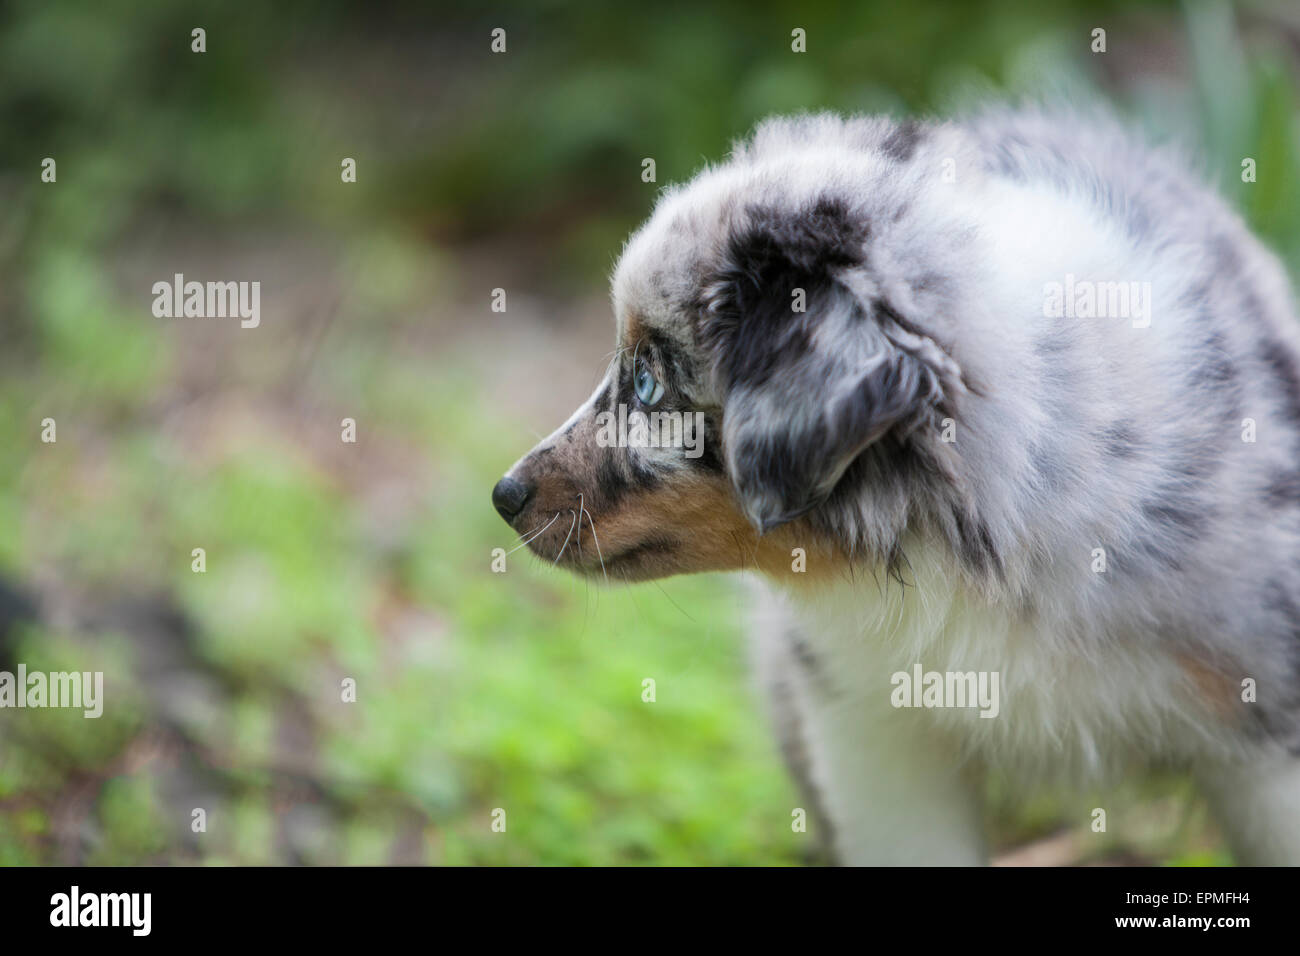 Australian Shepherd puppies are agile, energetic and mature into valued herding dogs and loyal companions who want to please. Stock Photo